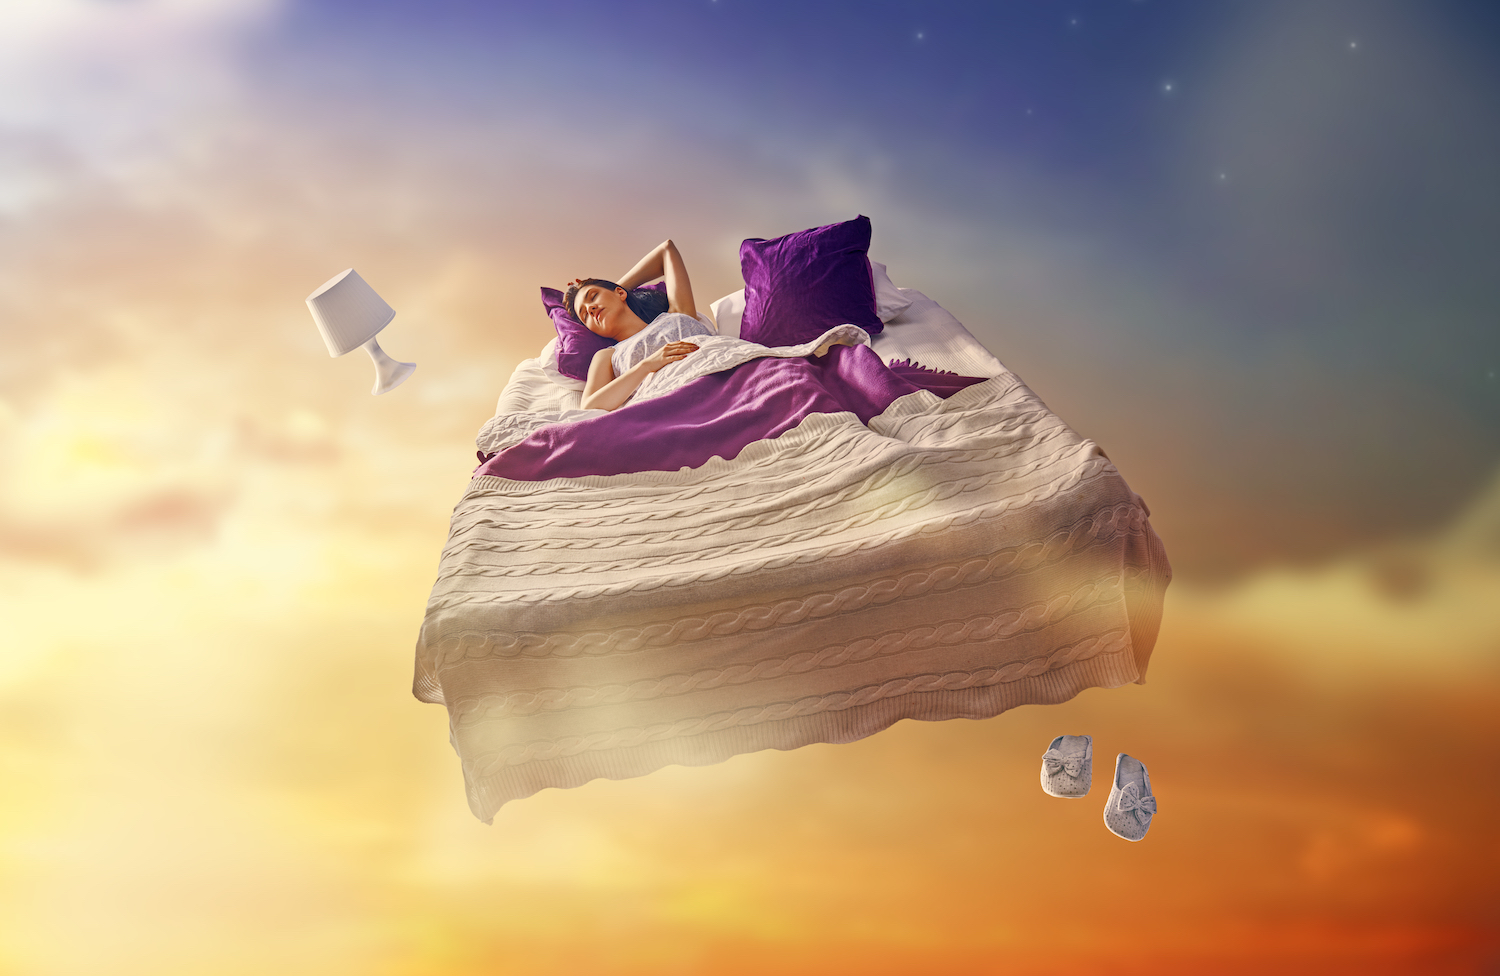 10 Most Common Dreams And Their Meaning